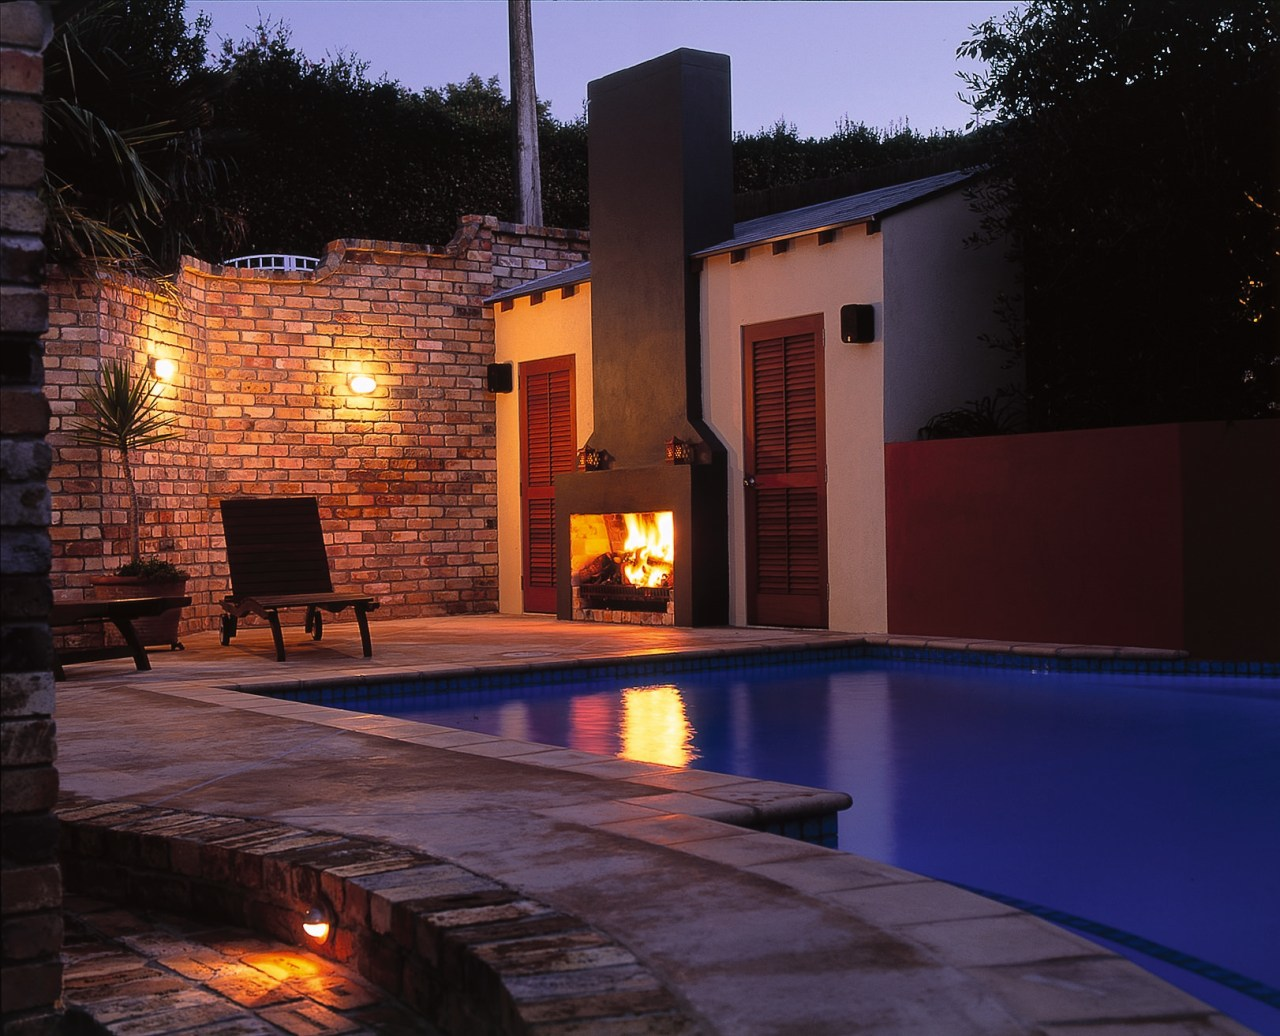 View of this pool backyard, estate, fireplace, home, house, landscape lighting, lighting, property, real estate, swimming pool, black